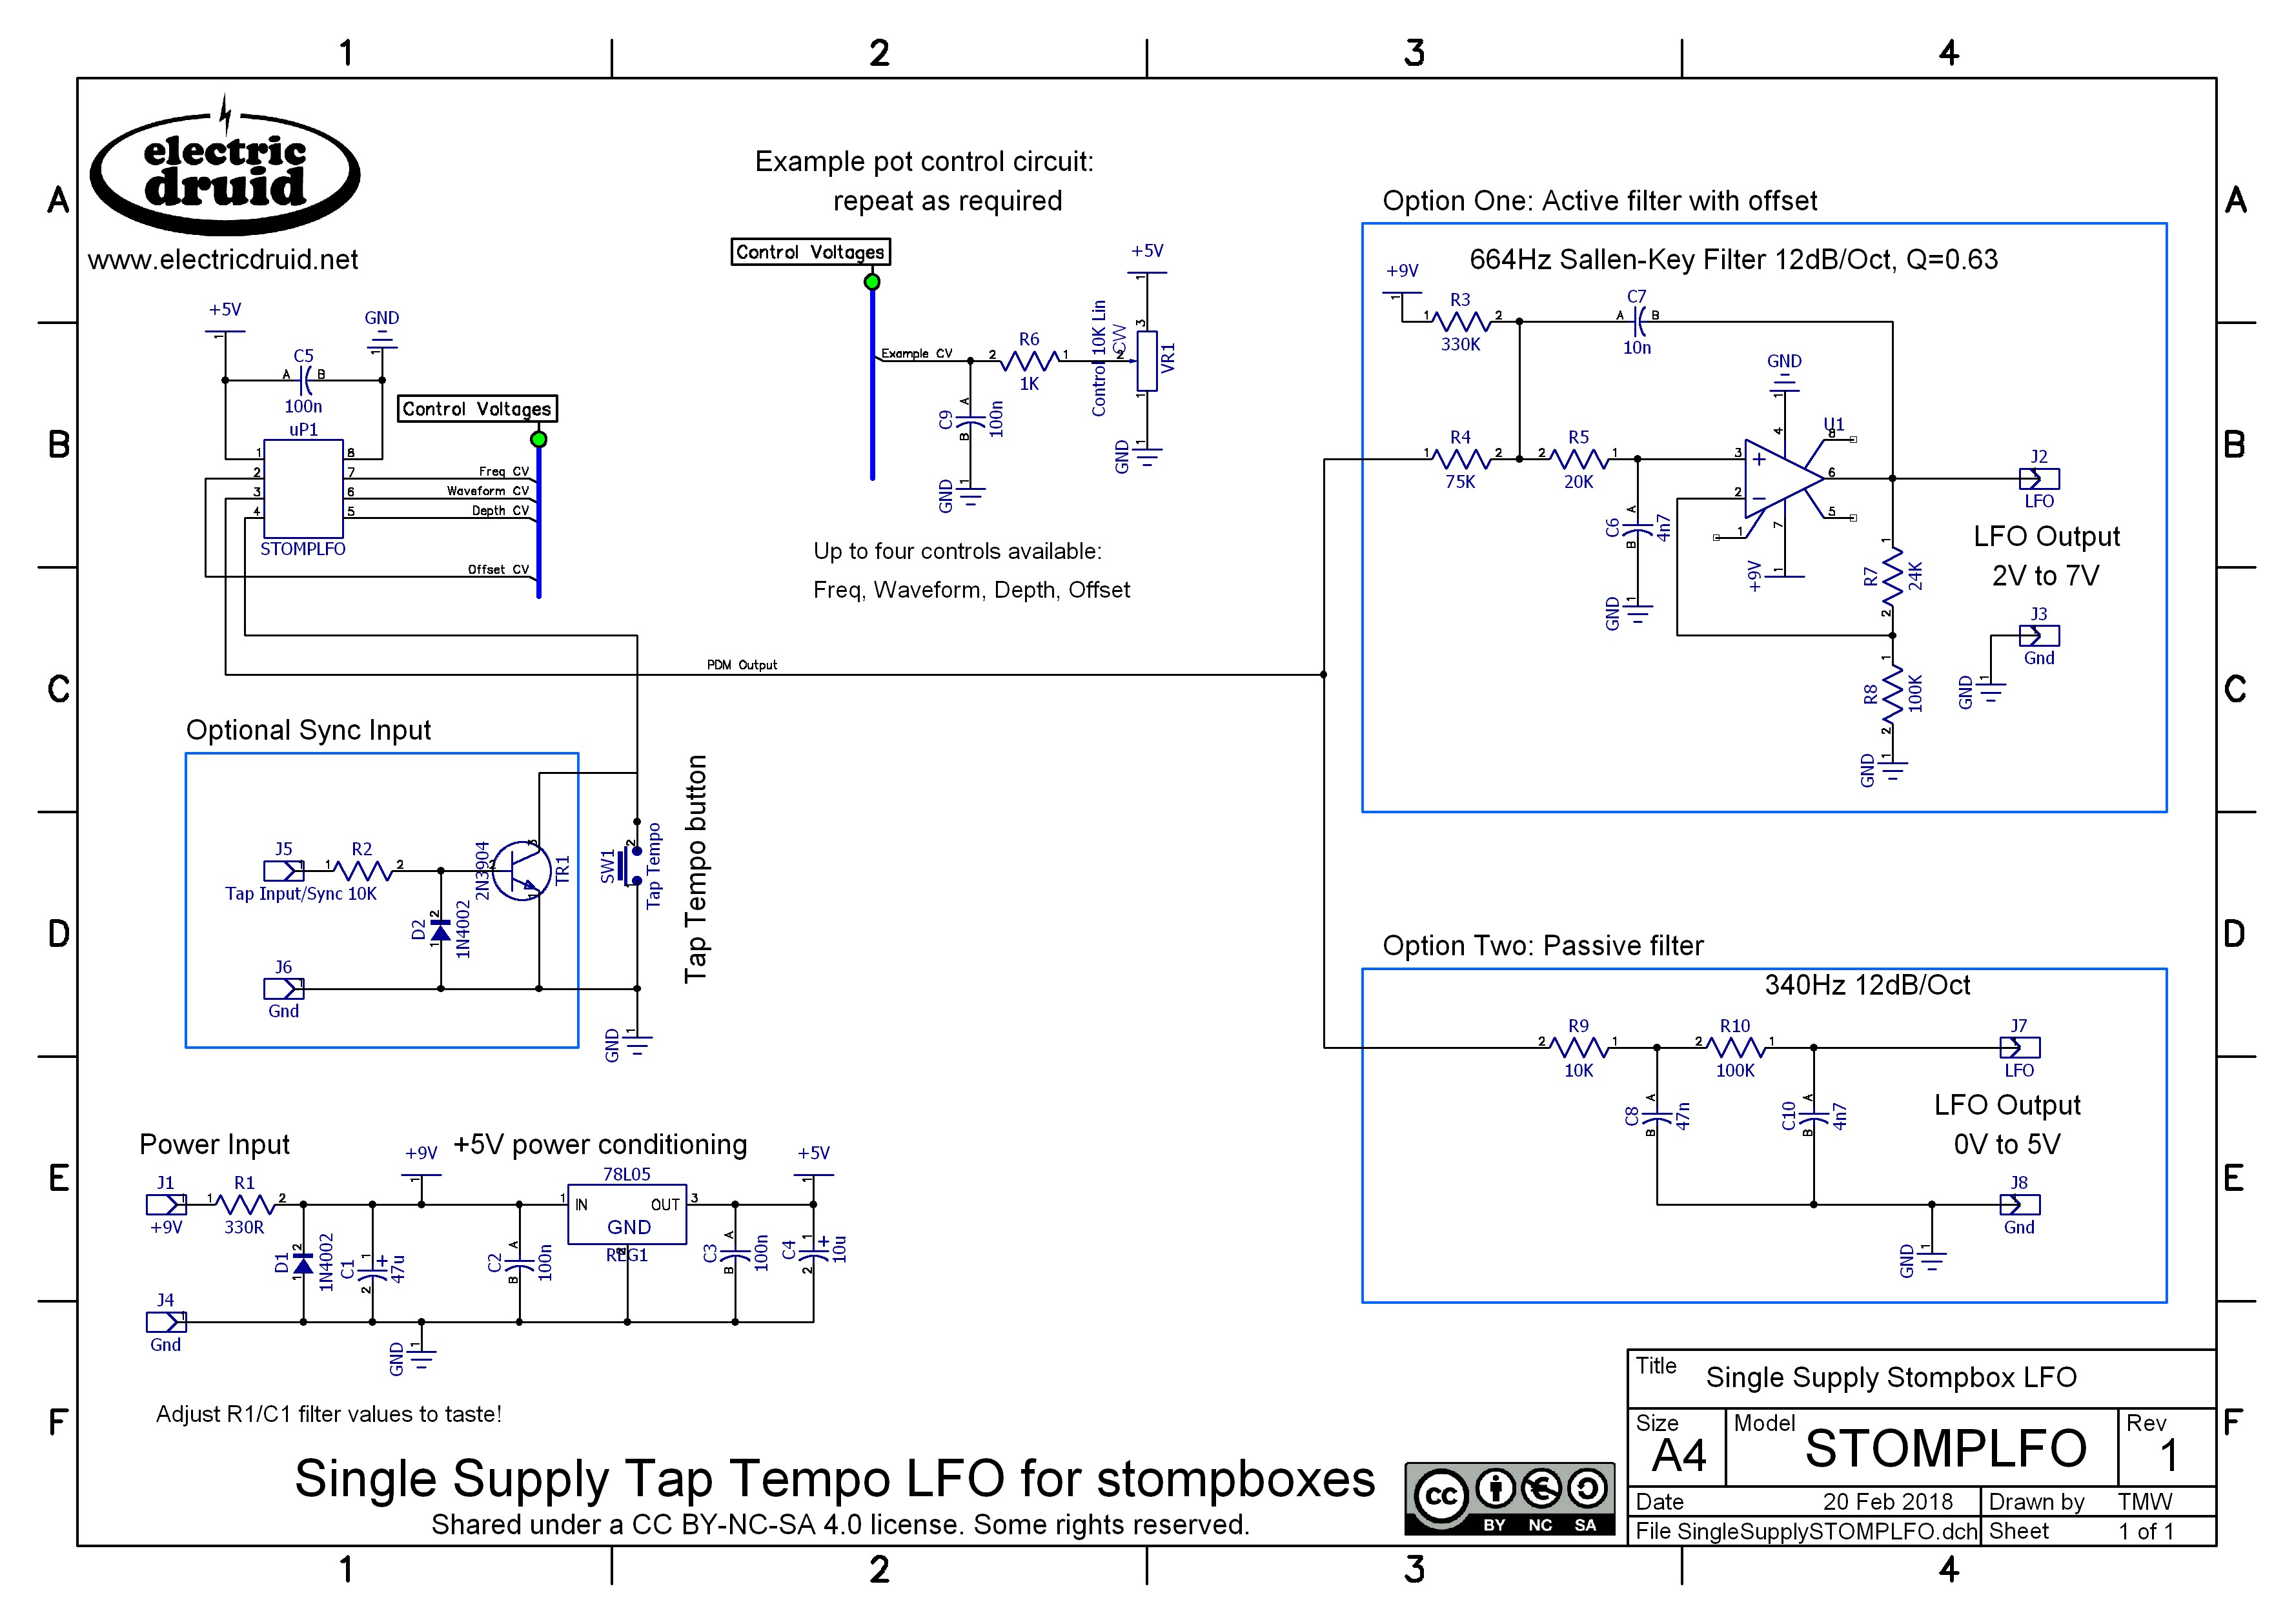 electric druid chips the next generation electric druidhex code from above file · stomplfo 8 pin tap tempo lfo circuit diagram